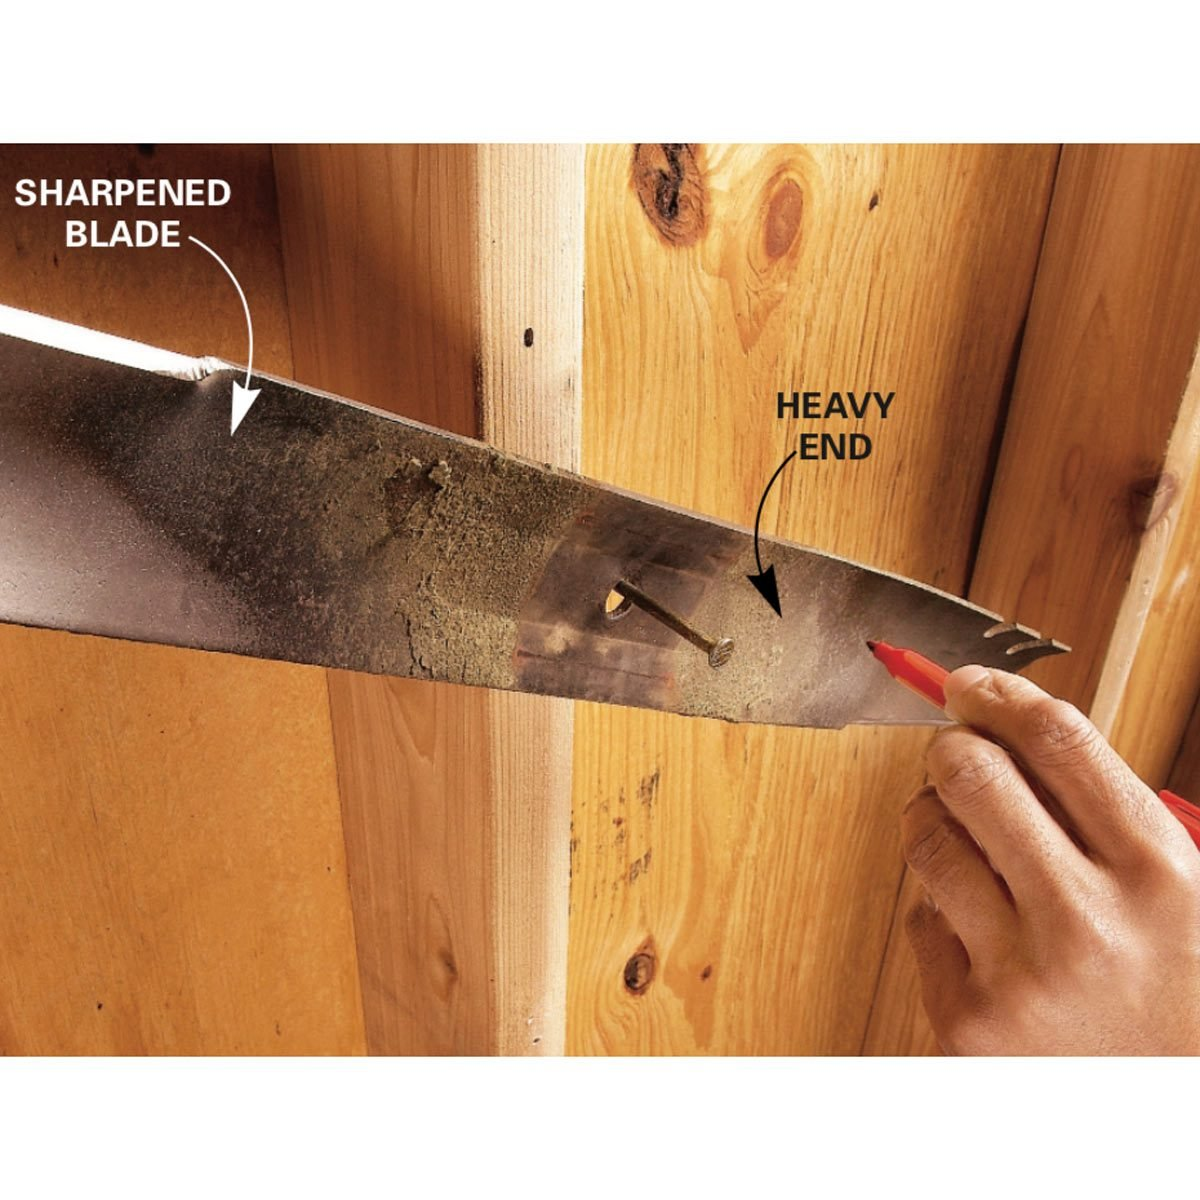 Sharpen Your Lawn Mower Blade | Family Handyman